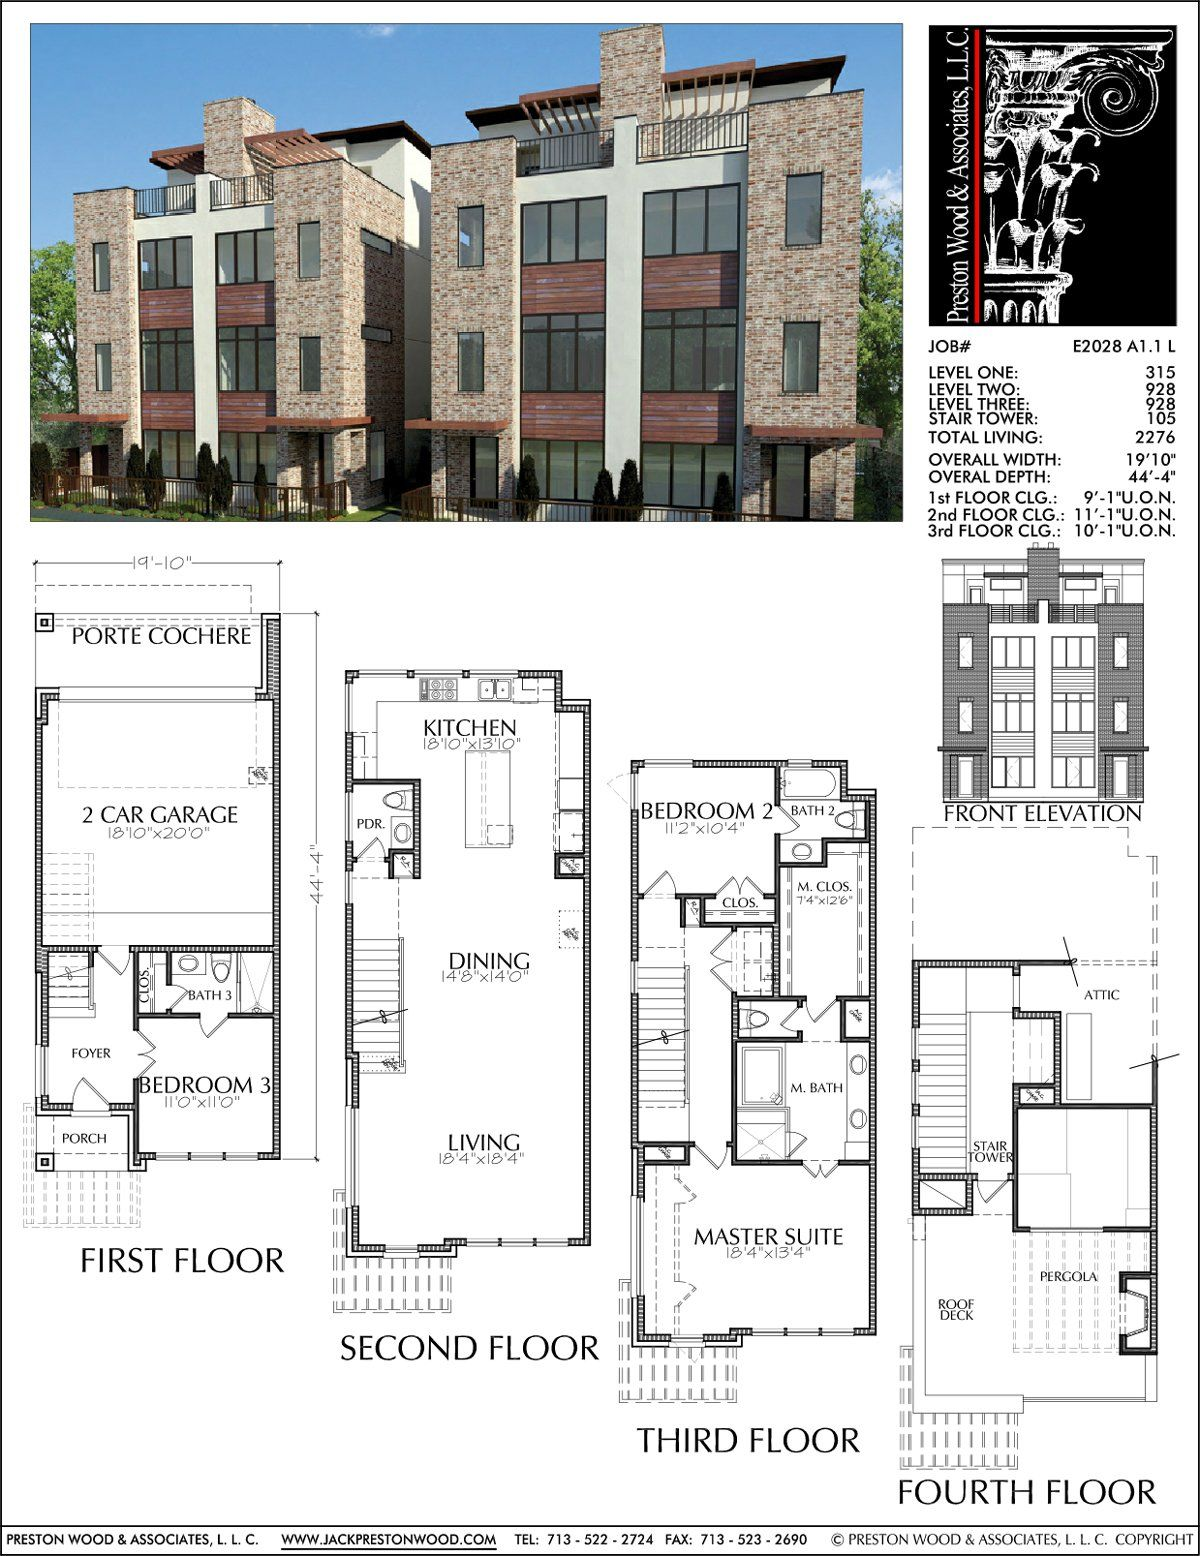 Duplex Townhomes, Townhouse Floor Plans, Urban Row House Plan ...